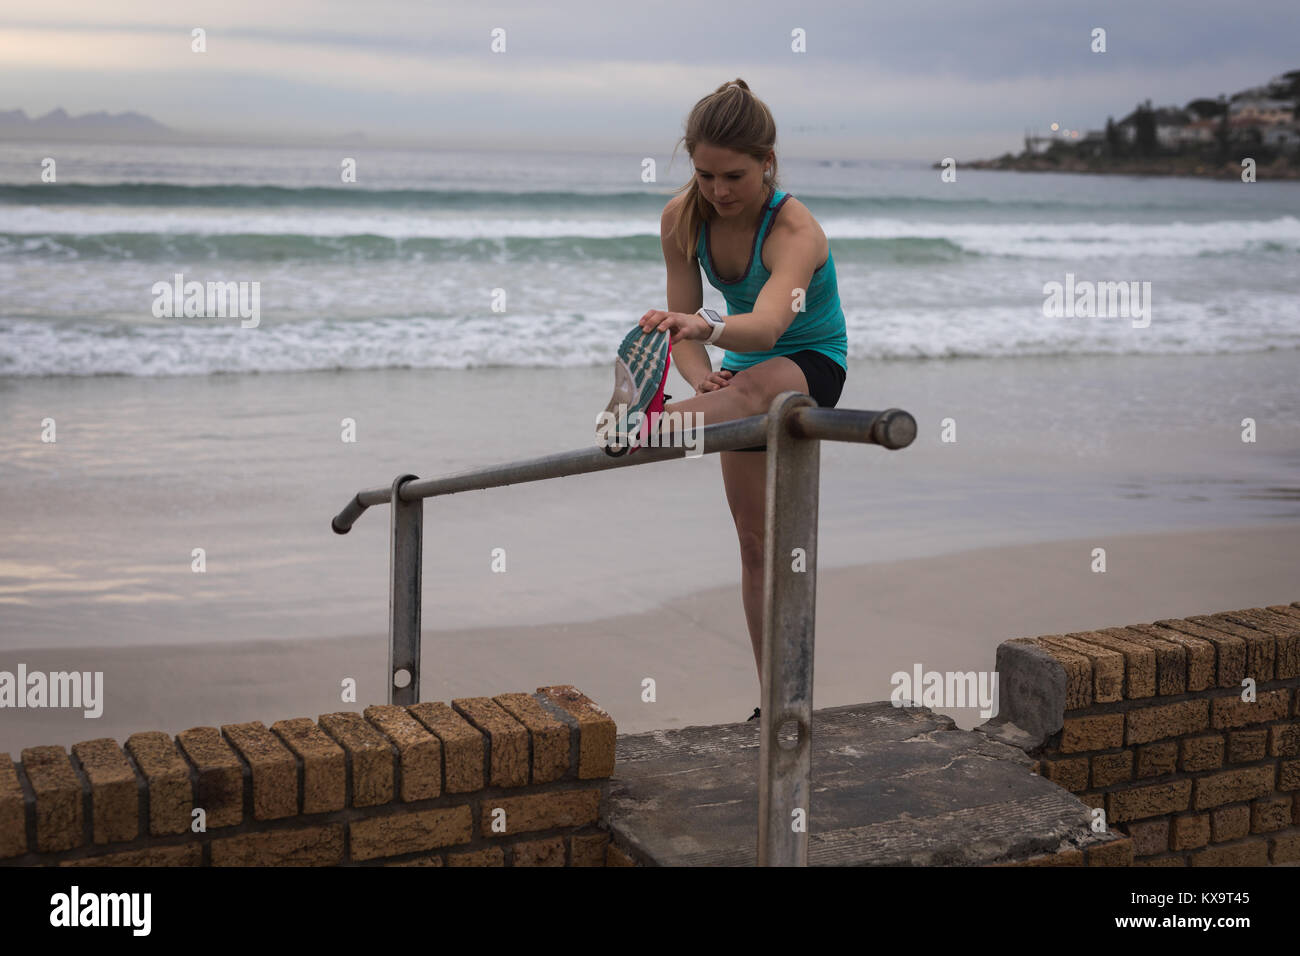 Woman performing stretching exercise near beach Stock Photo